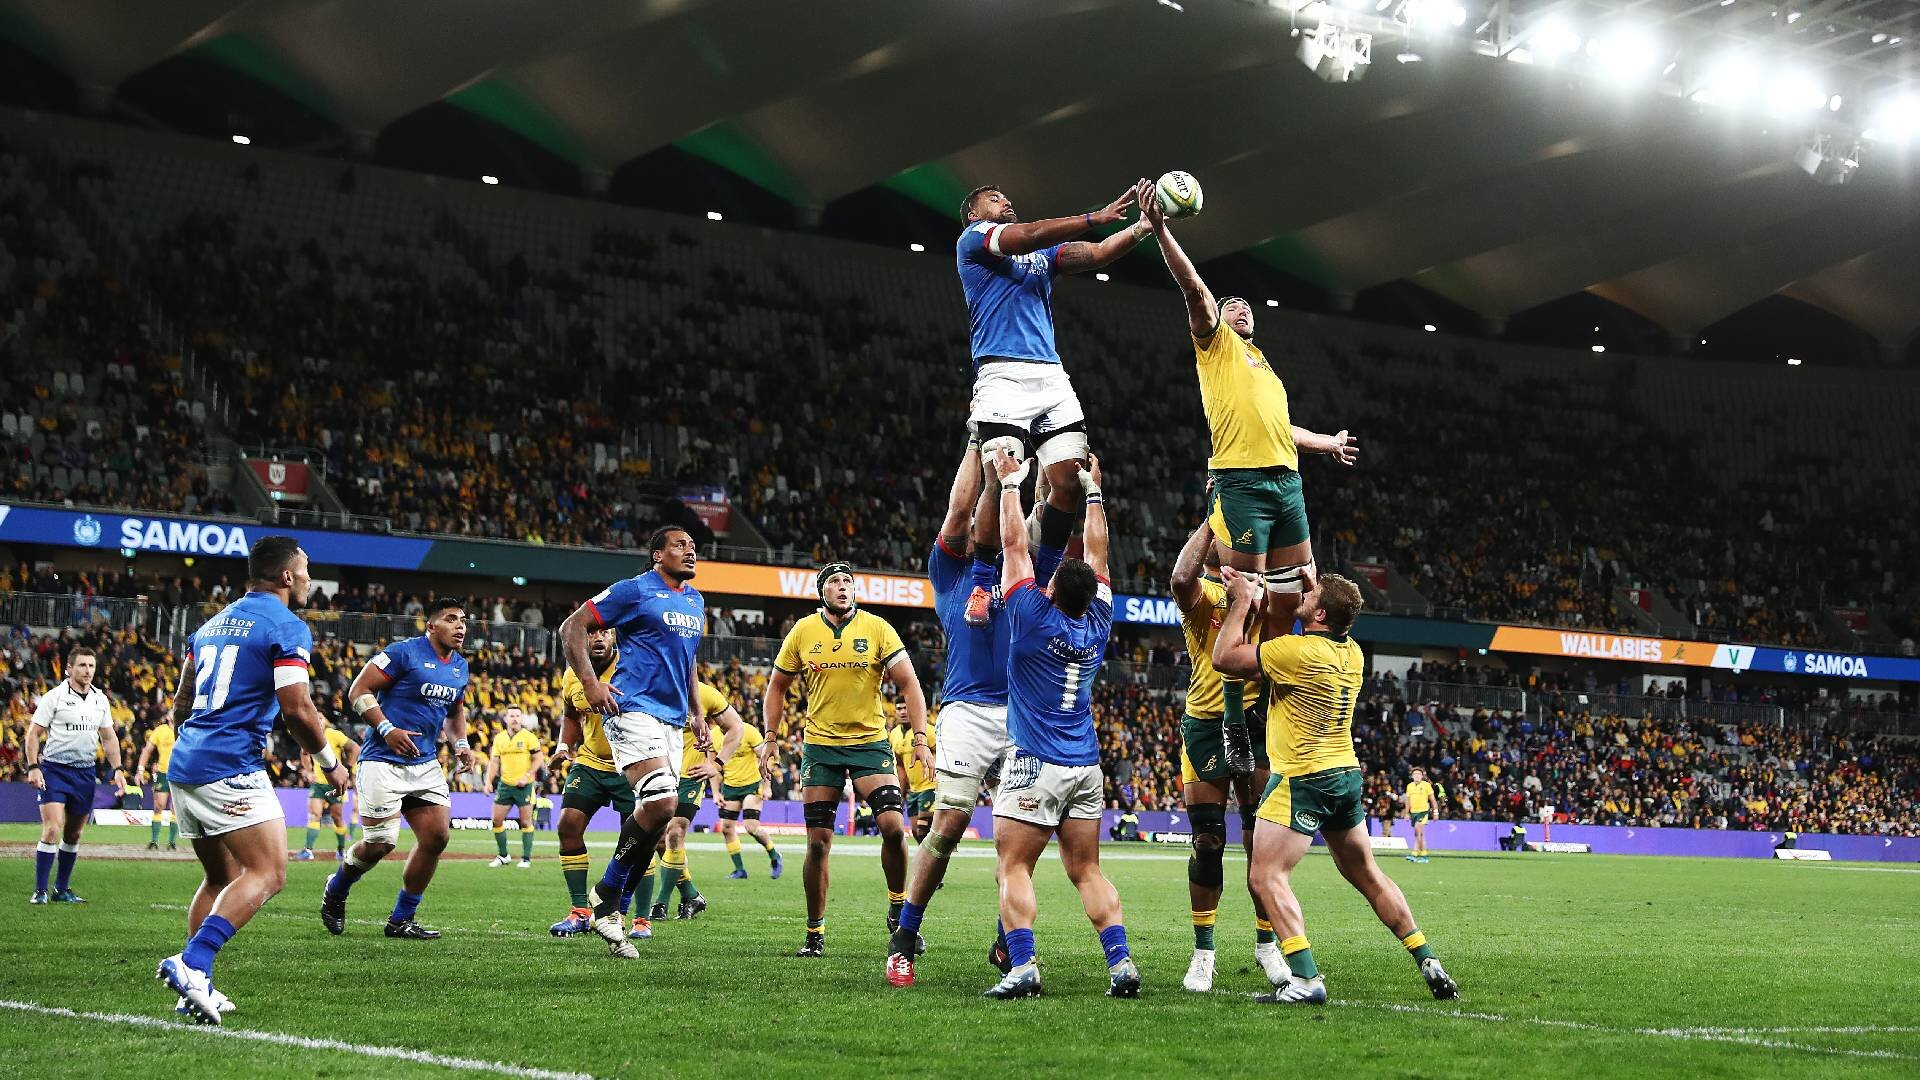 Enormous reaction to compelling new documentary highlighting exploitation of Pacific Island players